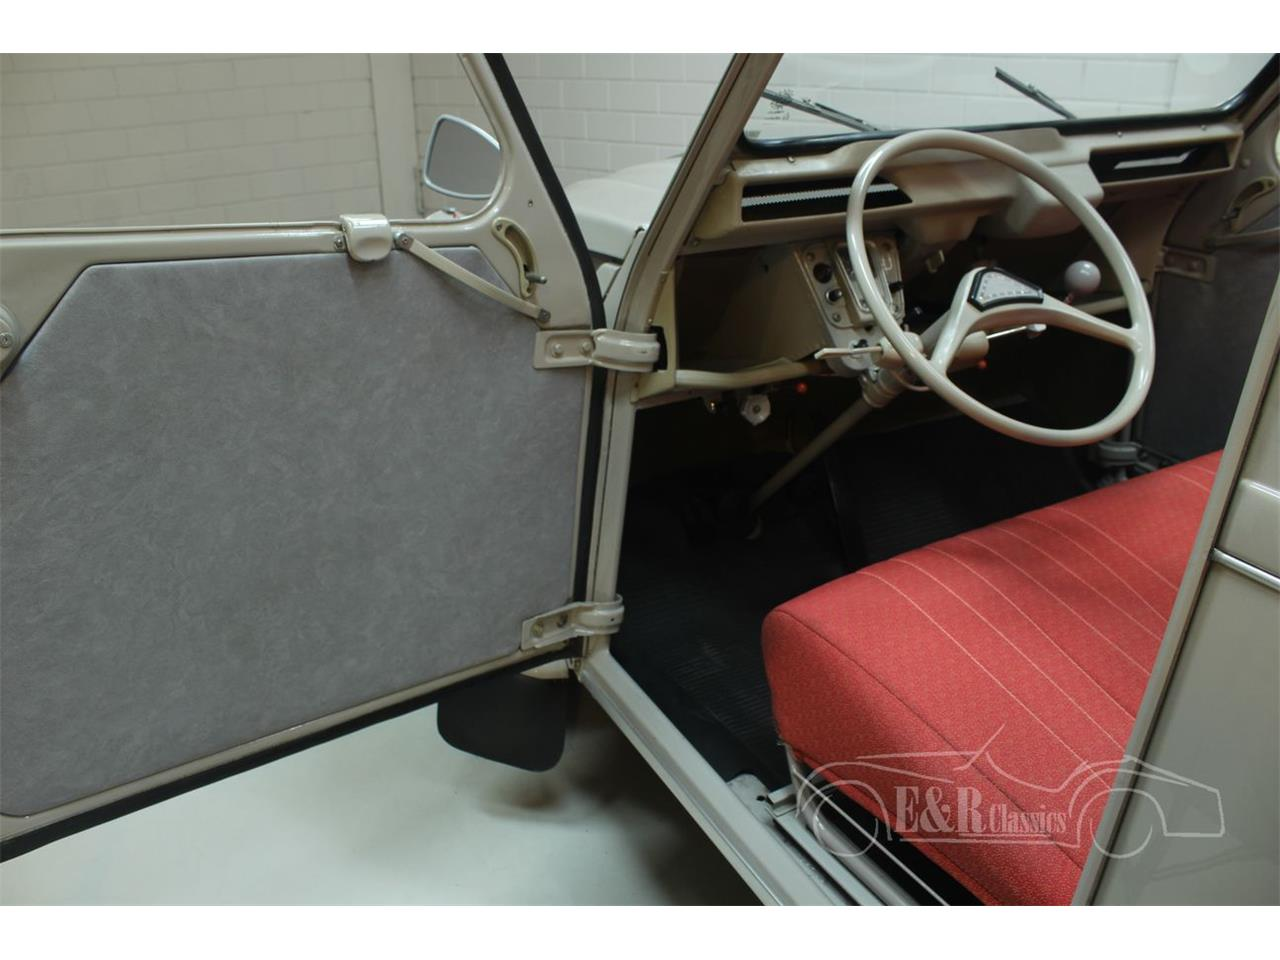 Large Picture of 1966 Citroen 2CV located in - Keine Angabe - - $22,550.00 - PGSV